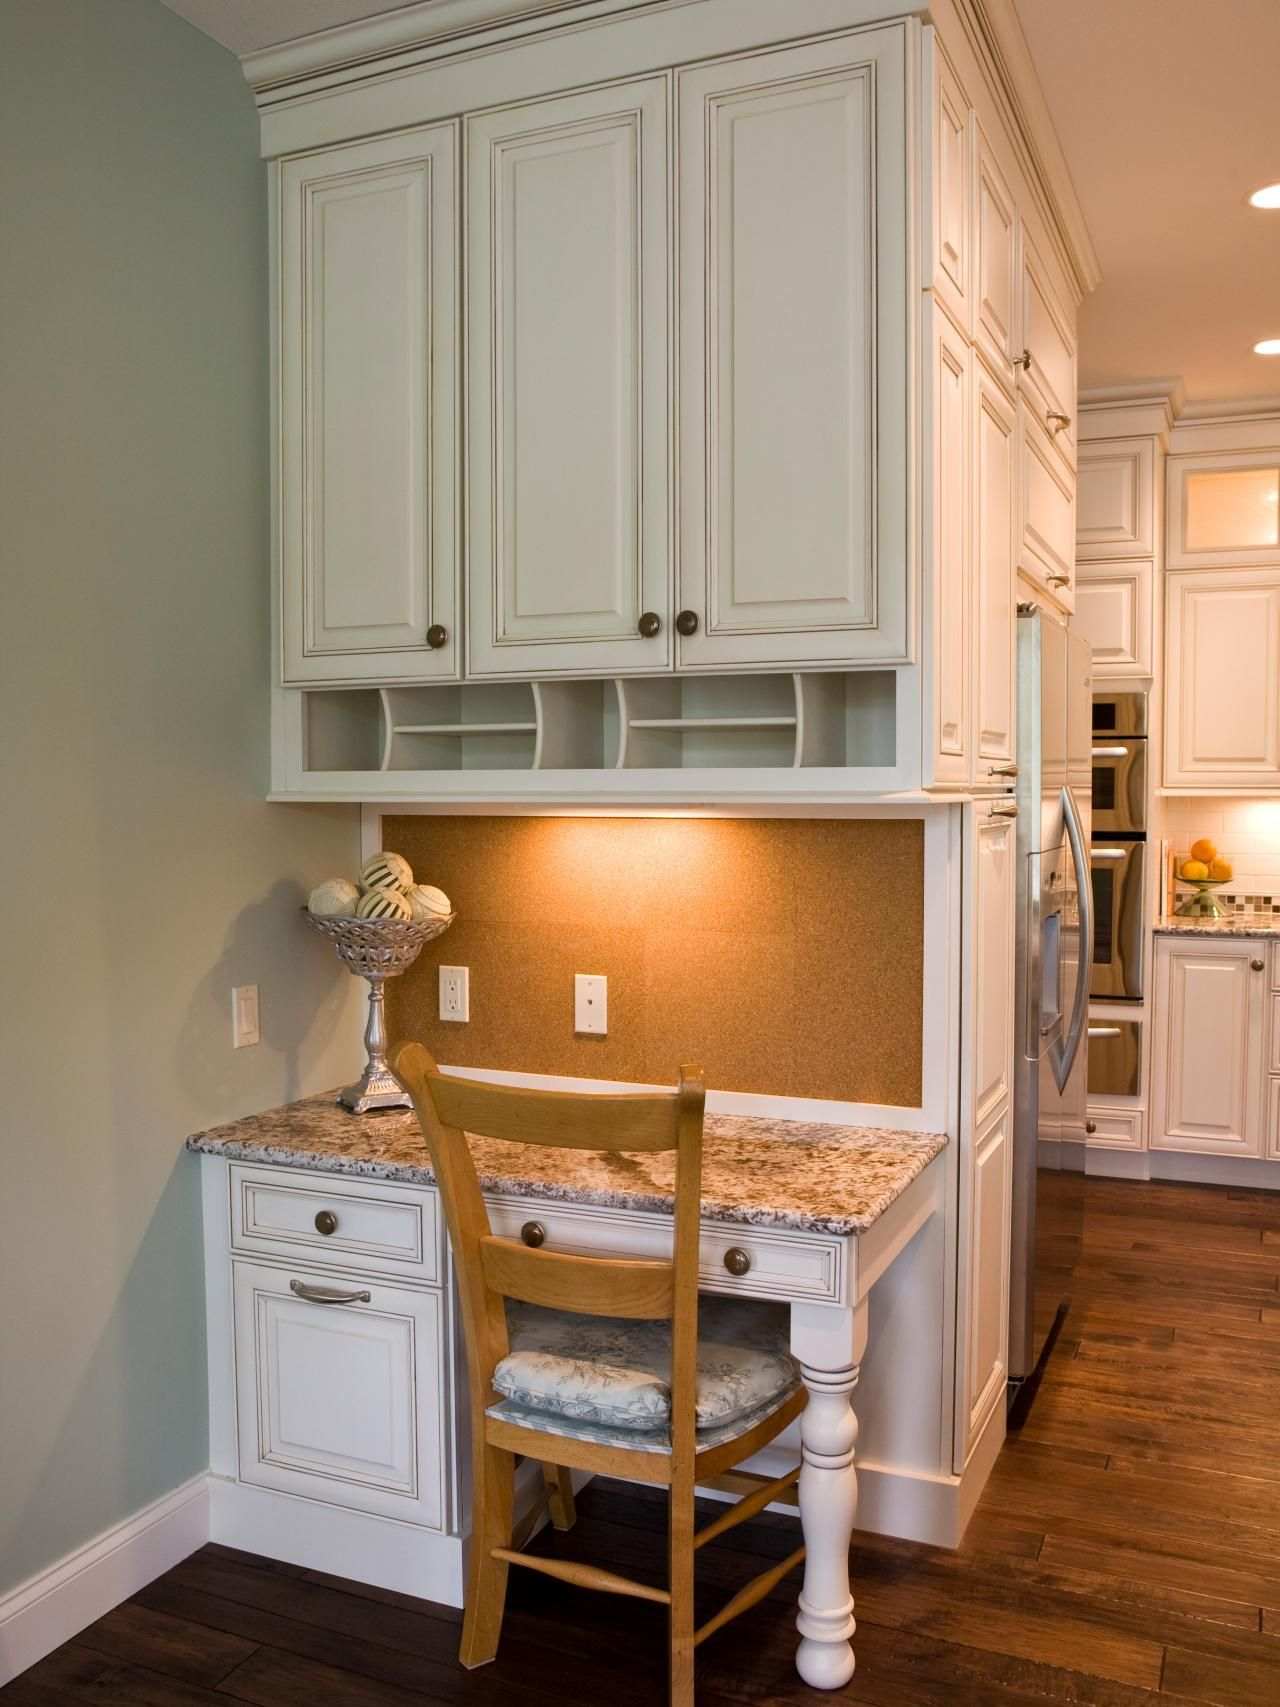 This custom designed kitchen desk area features plenty of for Small kitchen granite countertops